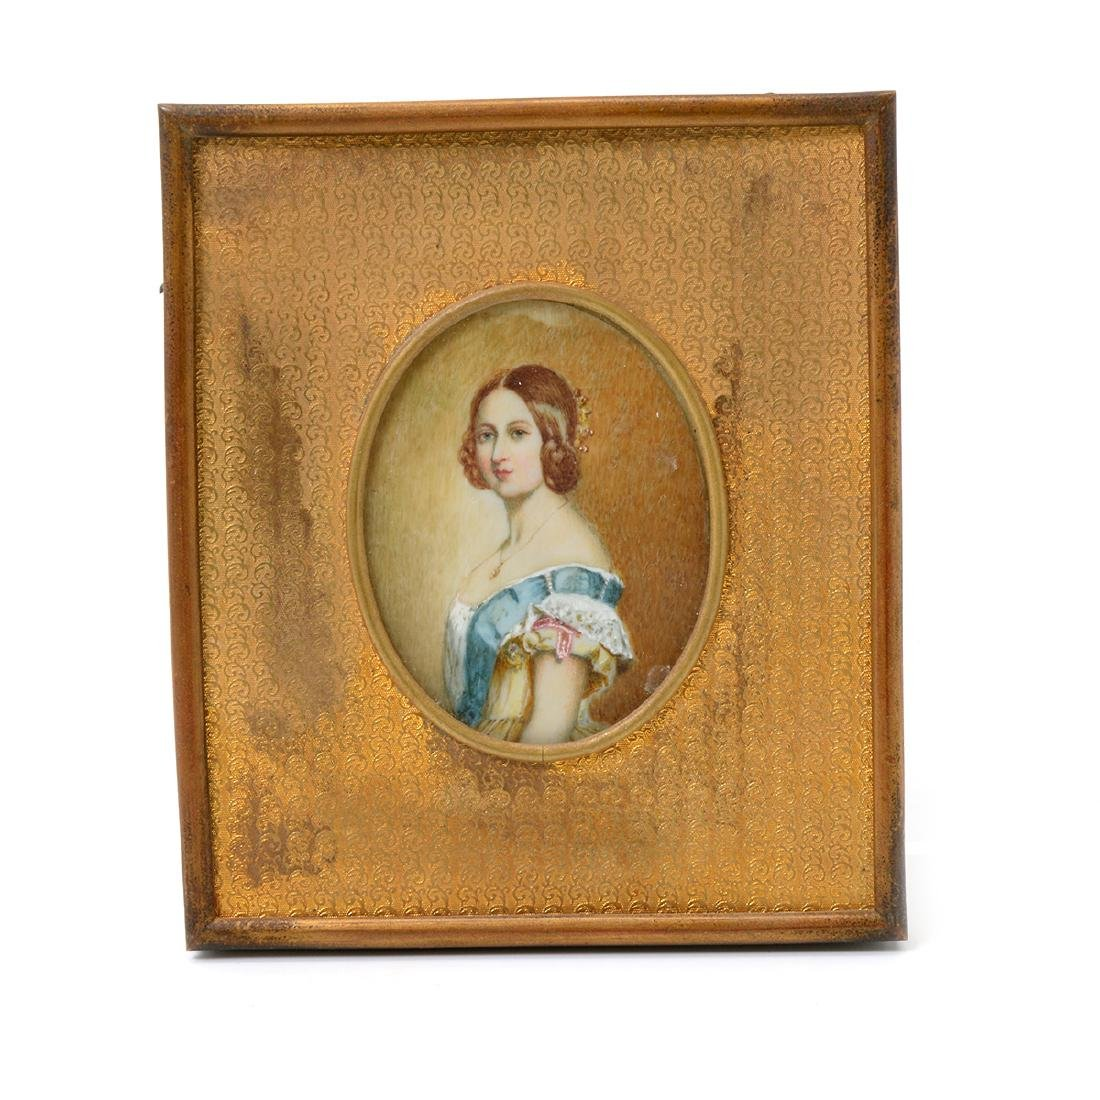 Six Miniature Portraits of Pre-Civil War Era Women - 5